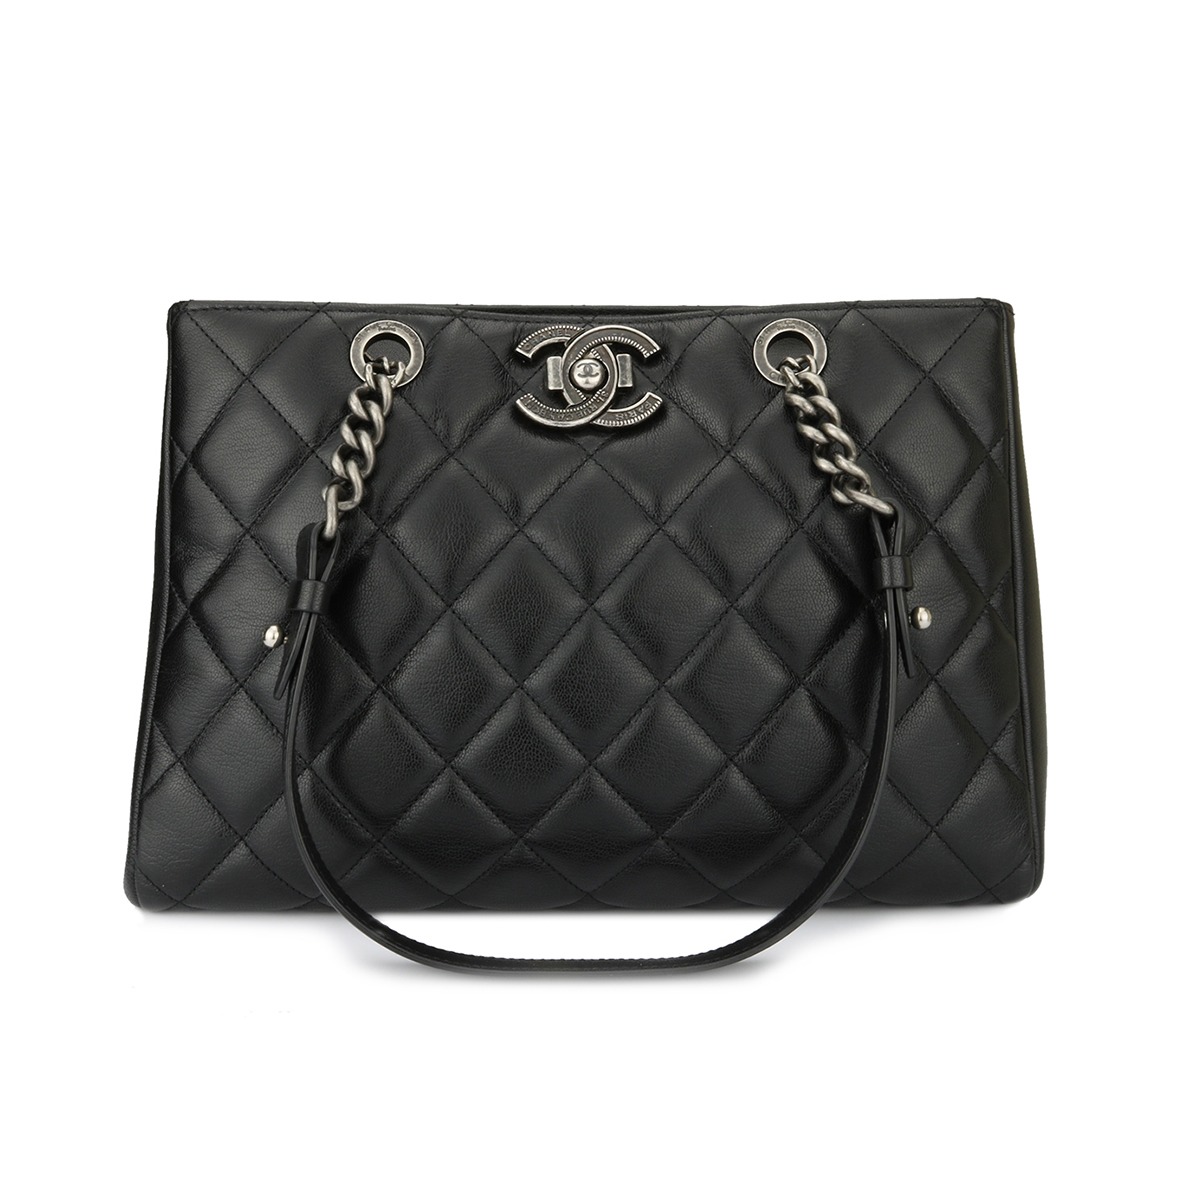 Home Chanel CHANEL Quilted City Rock Shopping Tote Black Goatskin Ruthenium  Hardware 2015.    d0f4bcfbfd70f